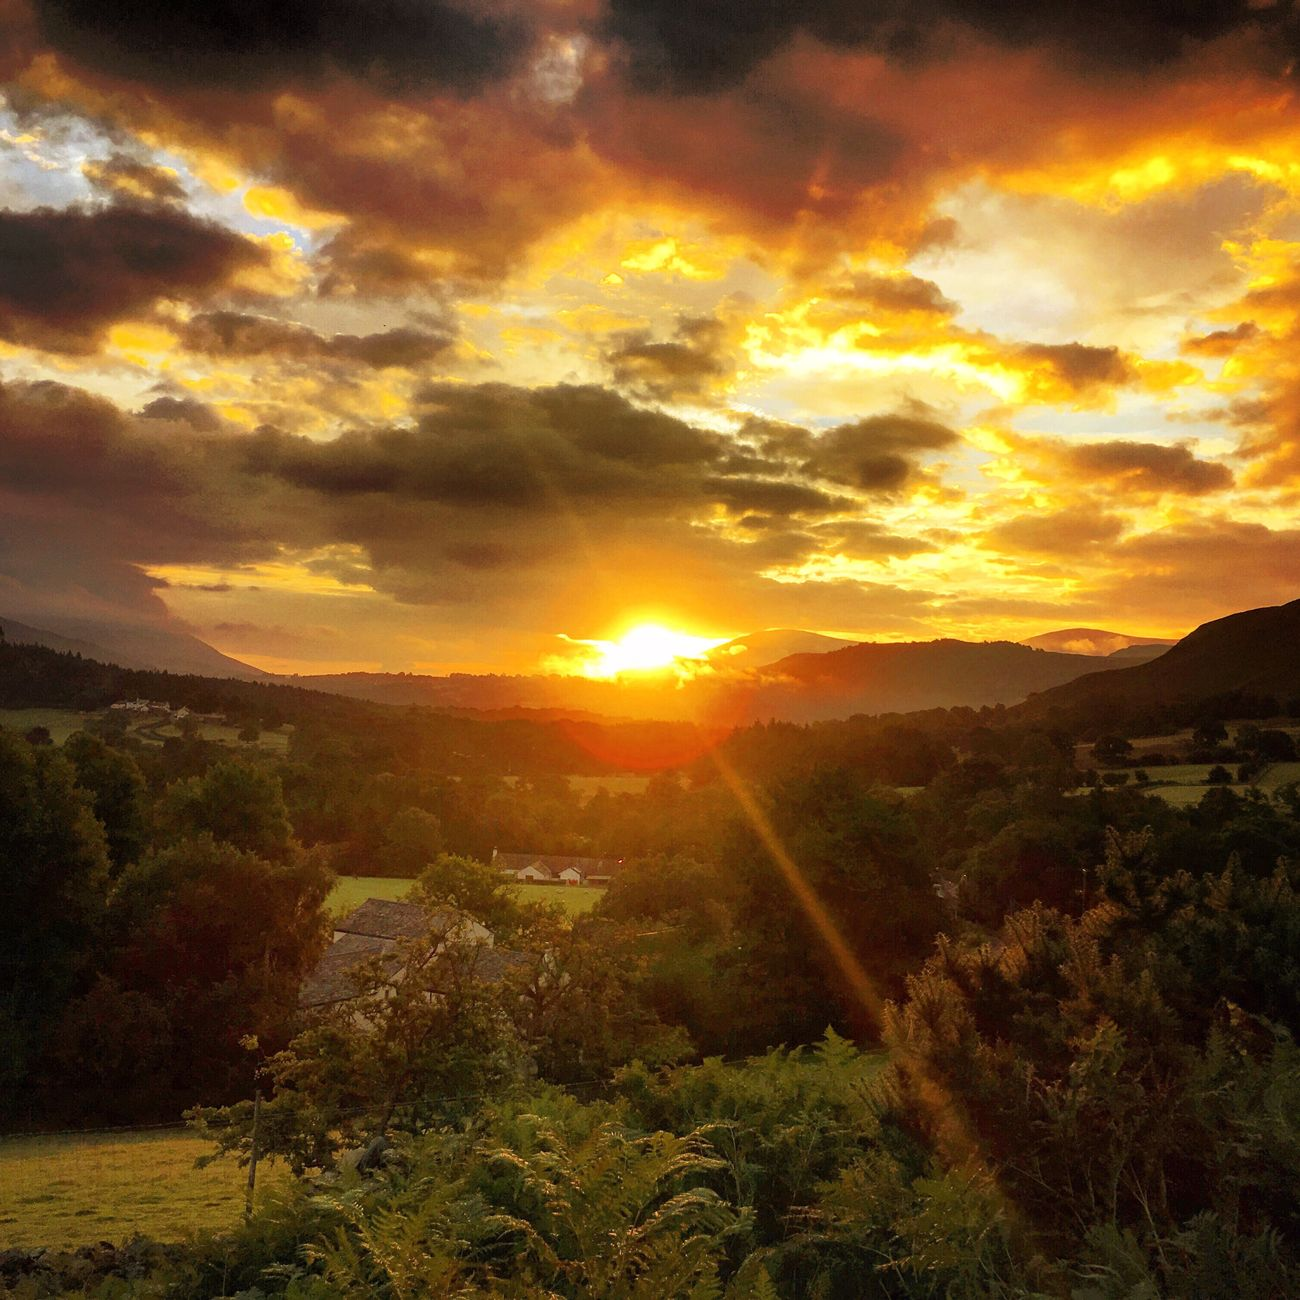 Sunrise Sunrise_Collection Sunrise Colors Sunrisephotography in the Lake District Cumbria England Tranquil Scene Scenics Beauty In Nature Tranquility Cloud - Sky Countryside Eyem Nature Lovers  Landscape_Collection Landscape Landscape_photography Mountains Hills And Valleys Sunbeam Keswick Newlands Pass